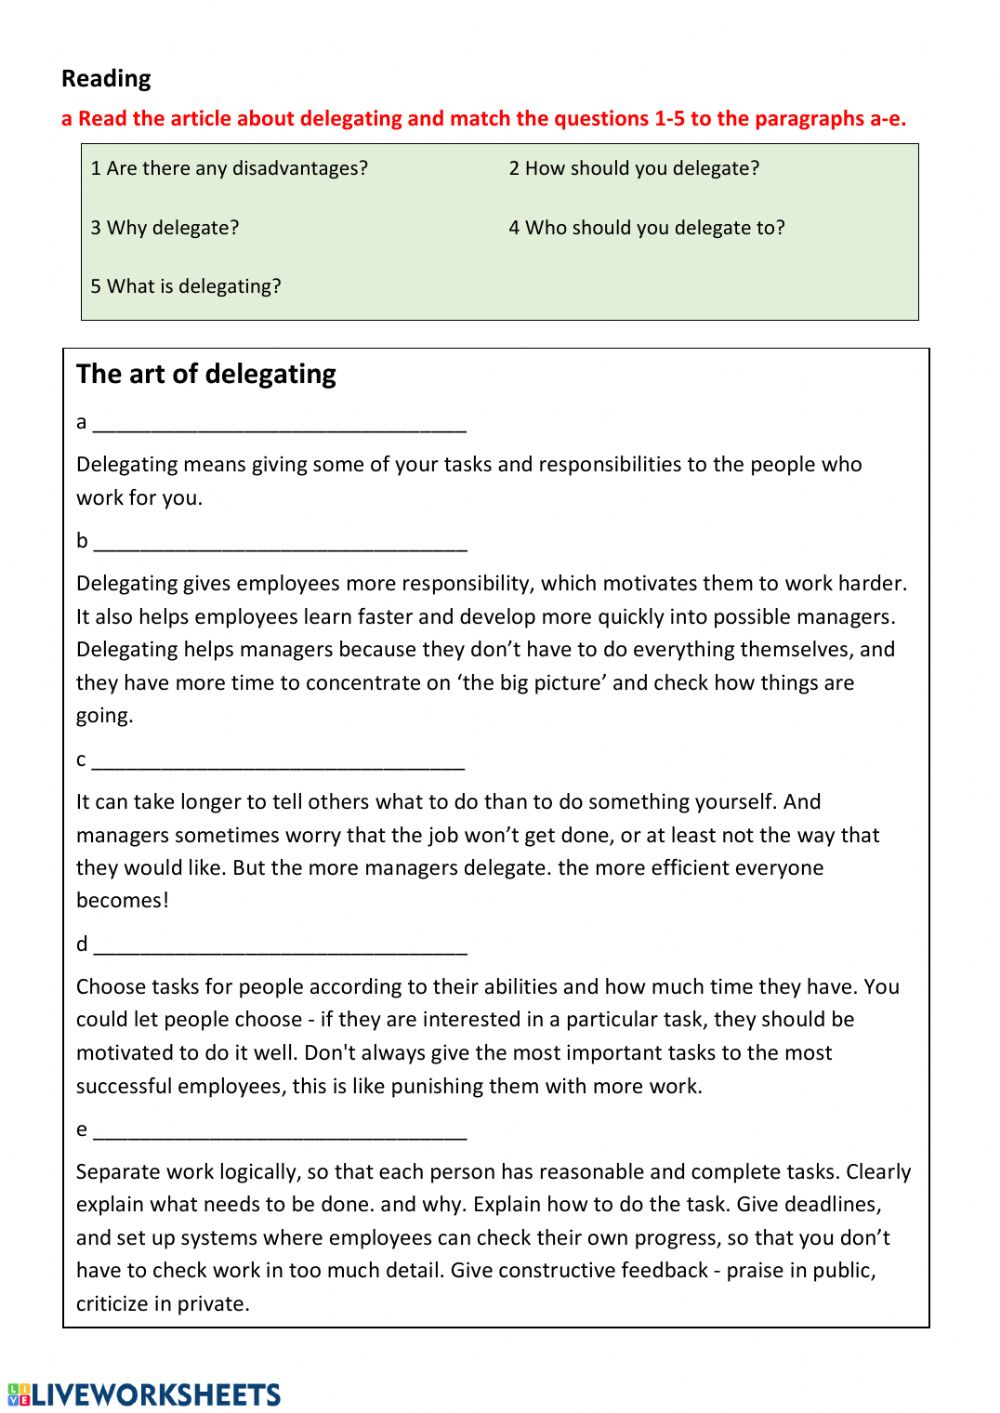 Delegation Interactive Worksheet